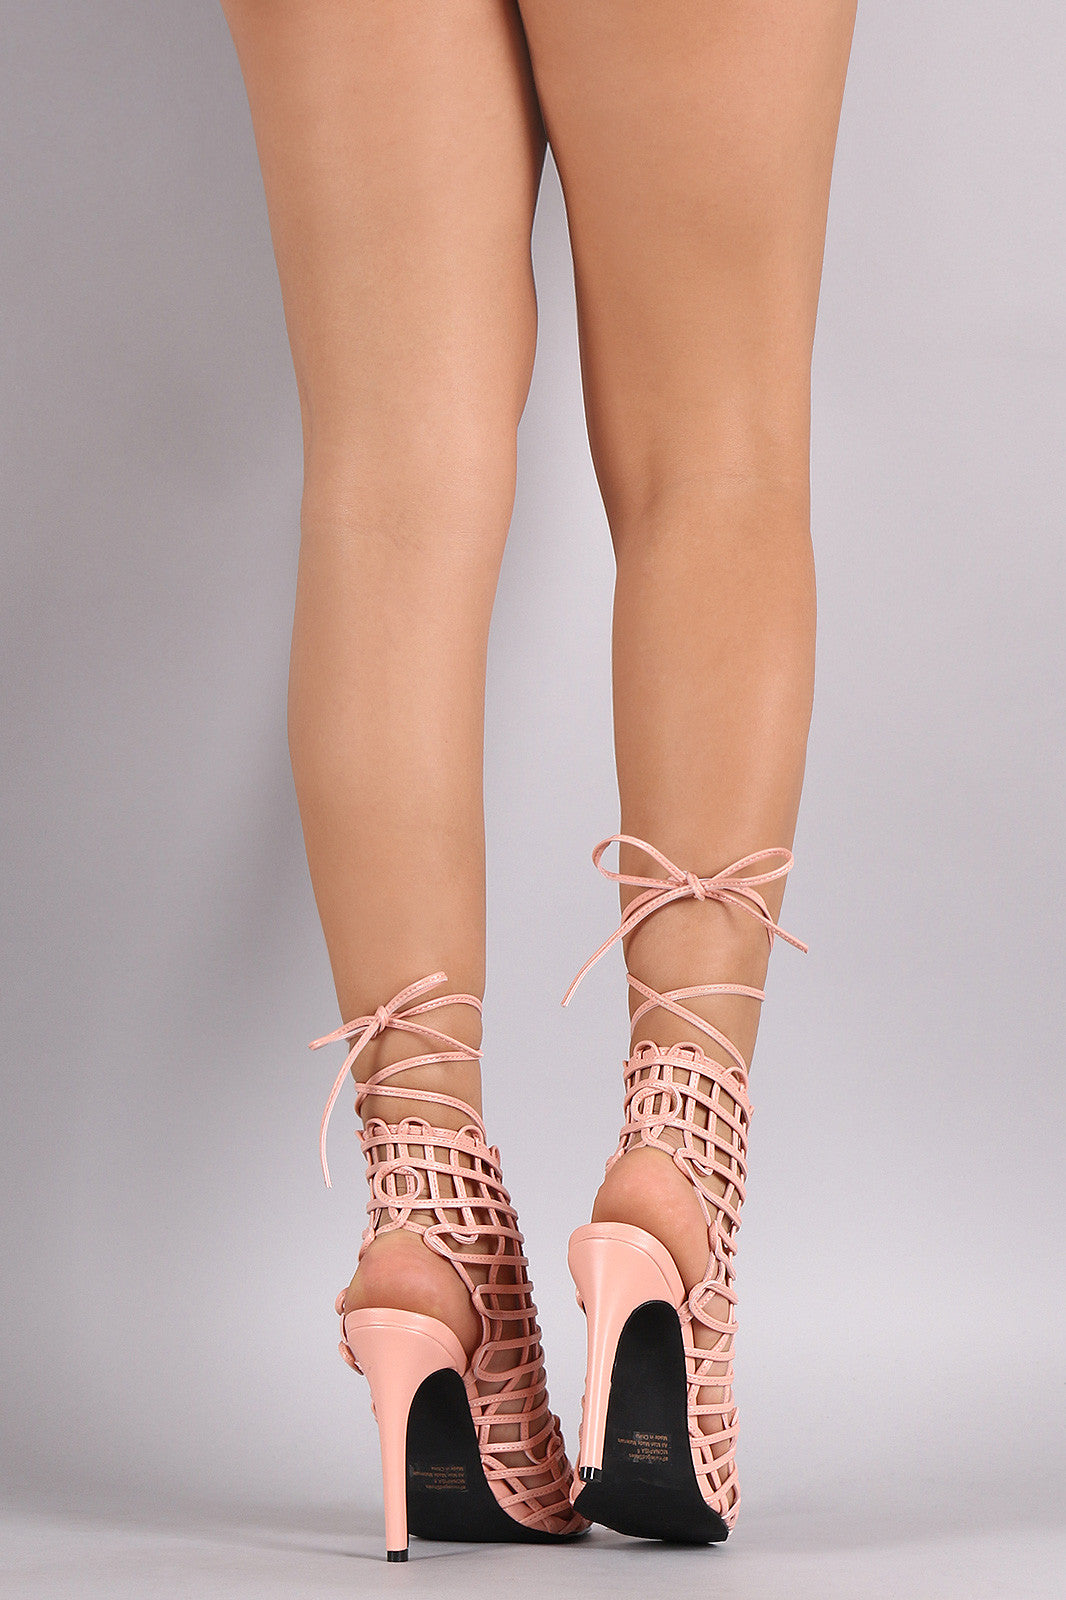 Privileged Webbed Laces Mule Heel - Thick 'N' Curvy Shop - 3